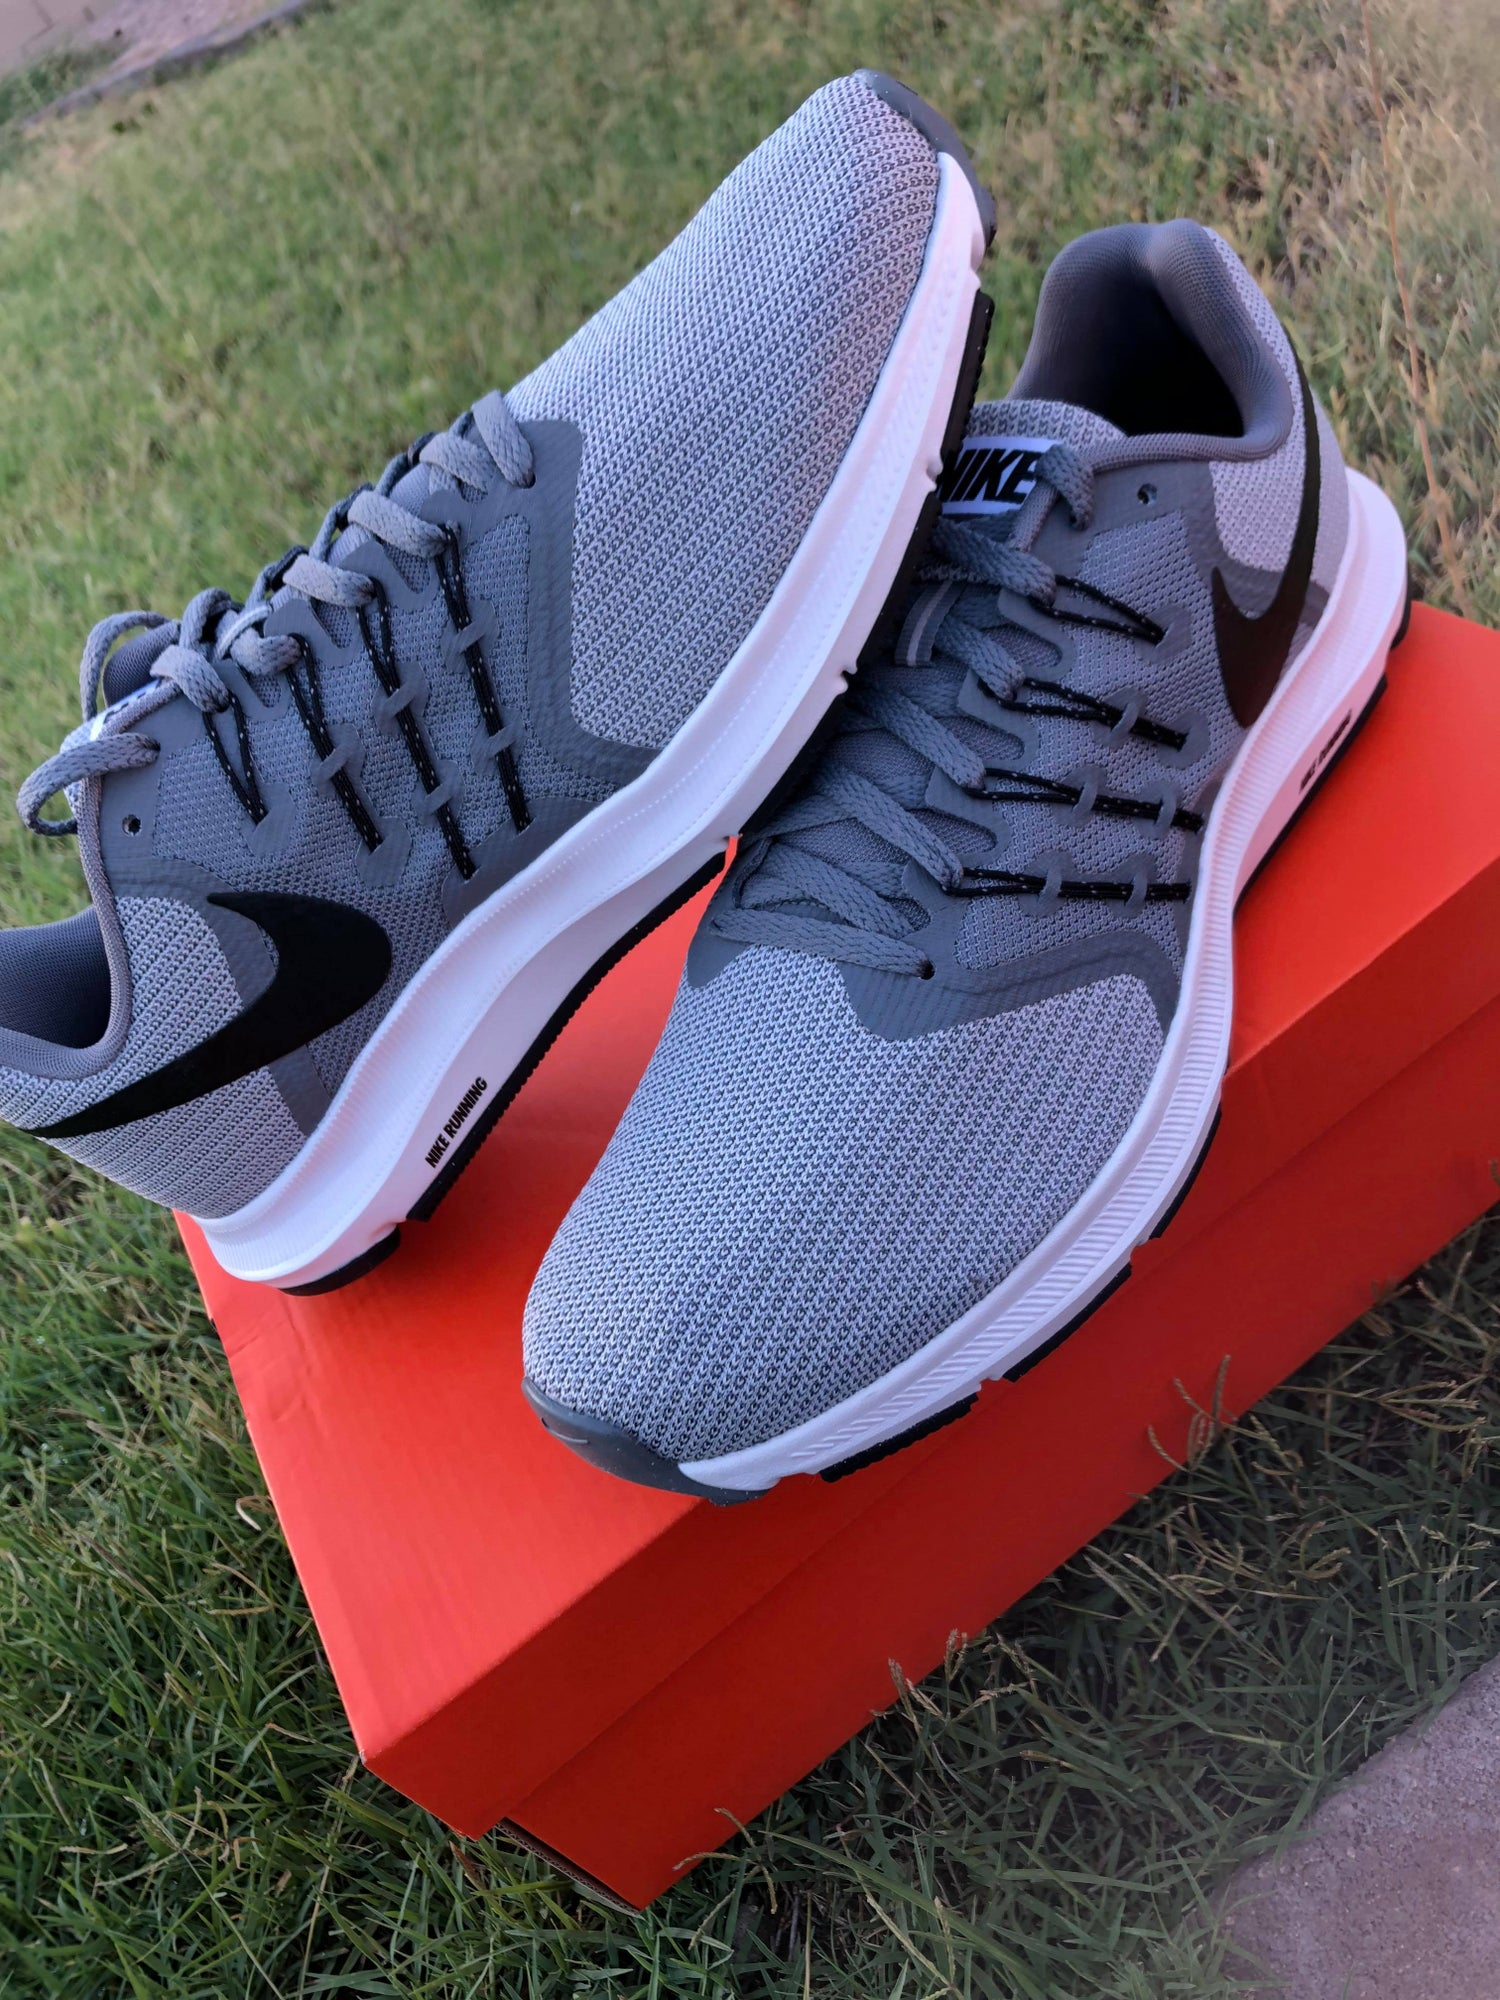 1f072e2229c56 Image of Nike Run Swift Men's Running Shoe Cool Grey / Black / Wolf Grey /